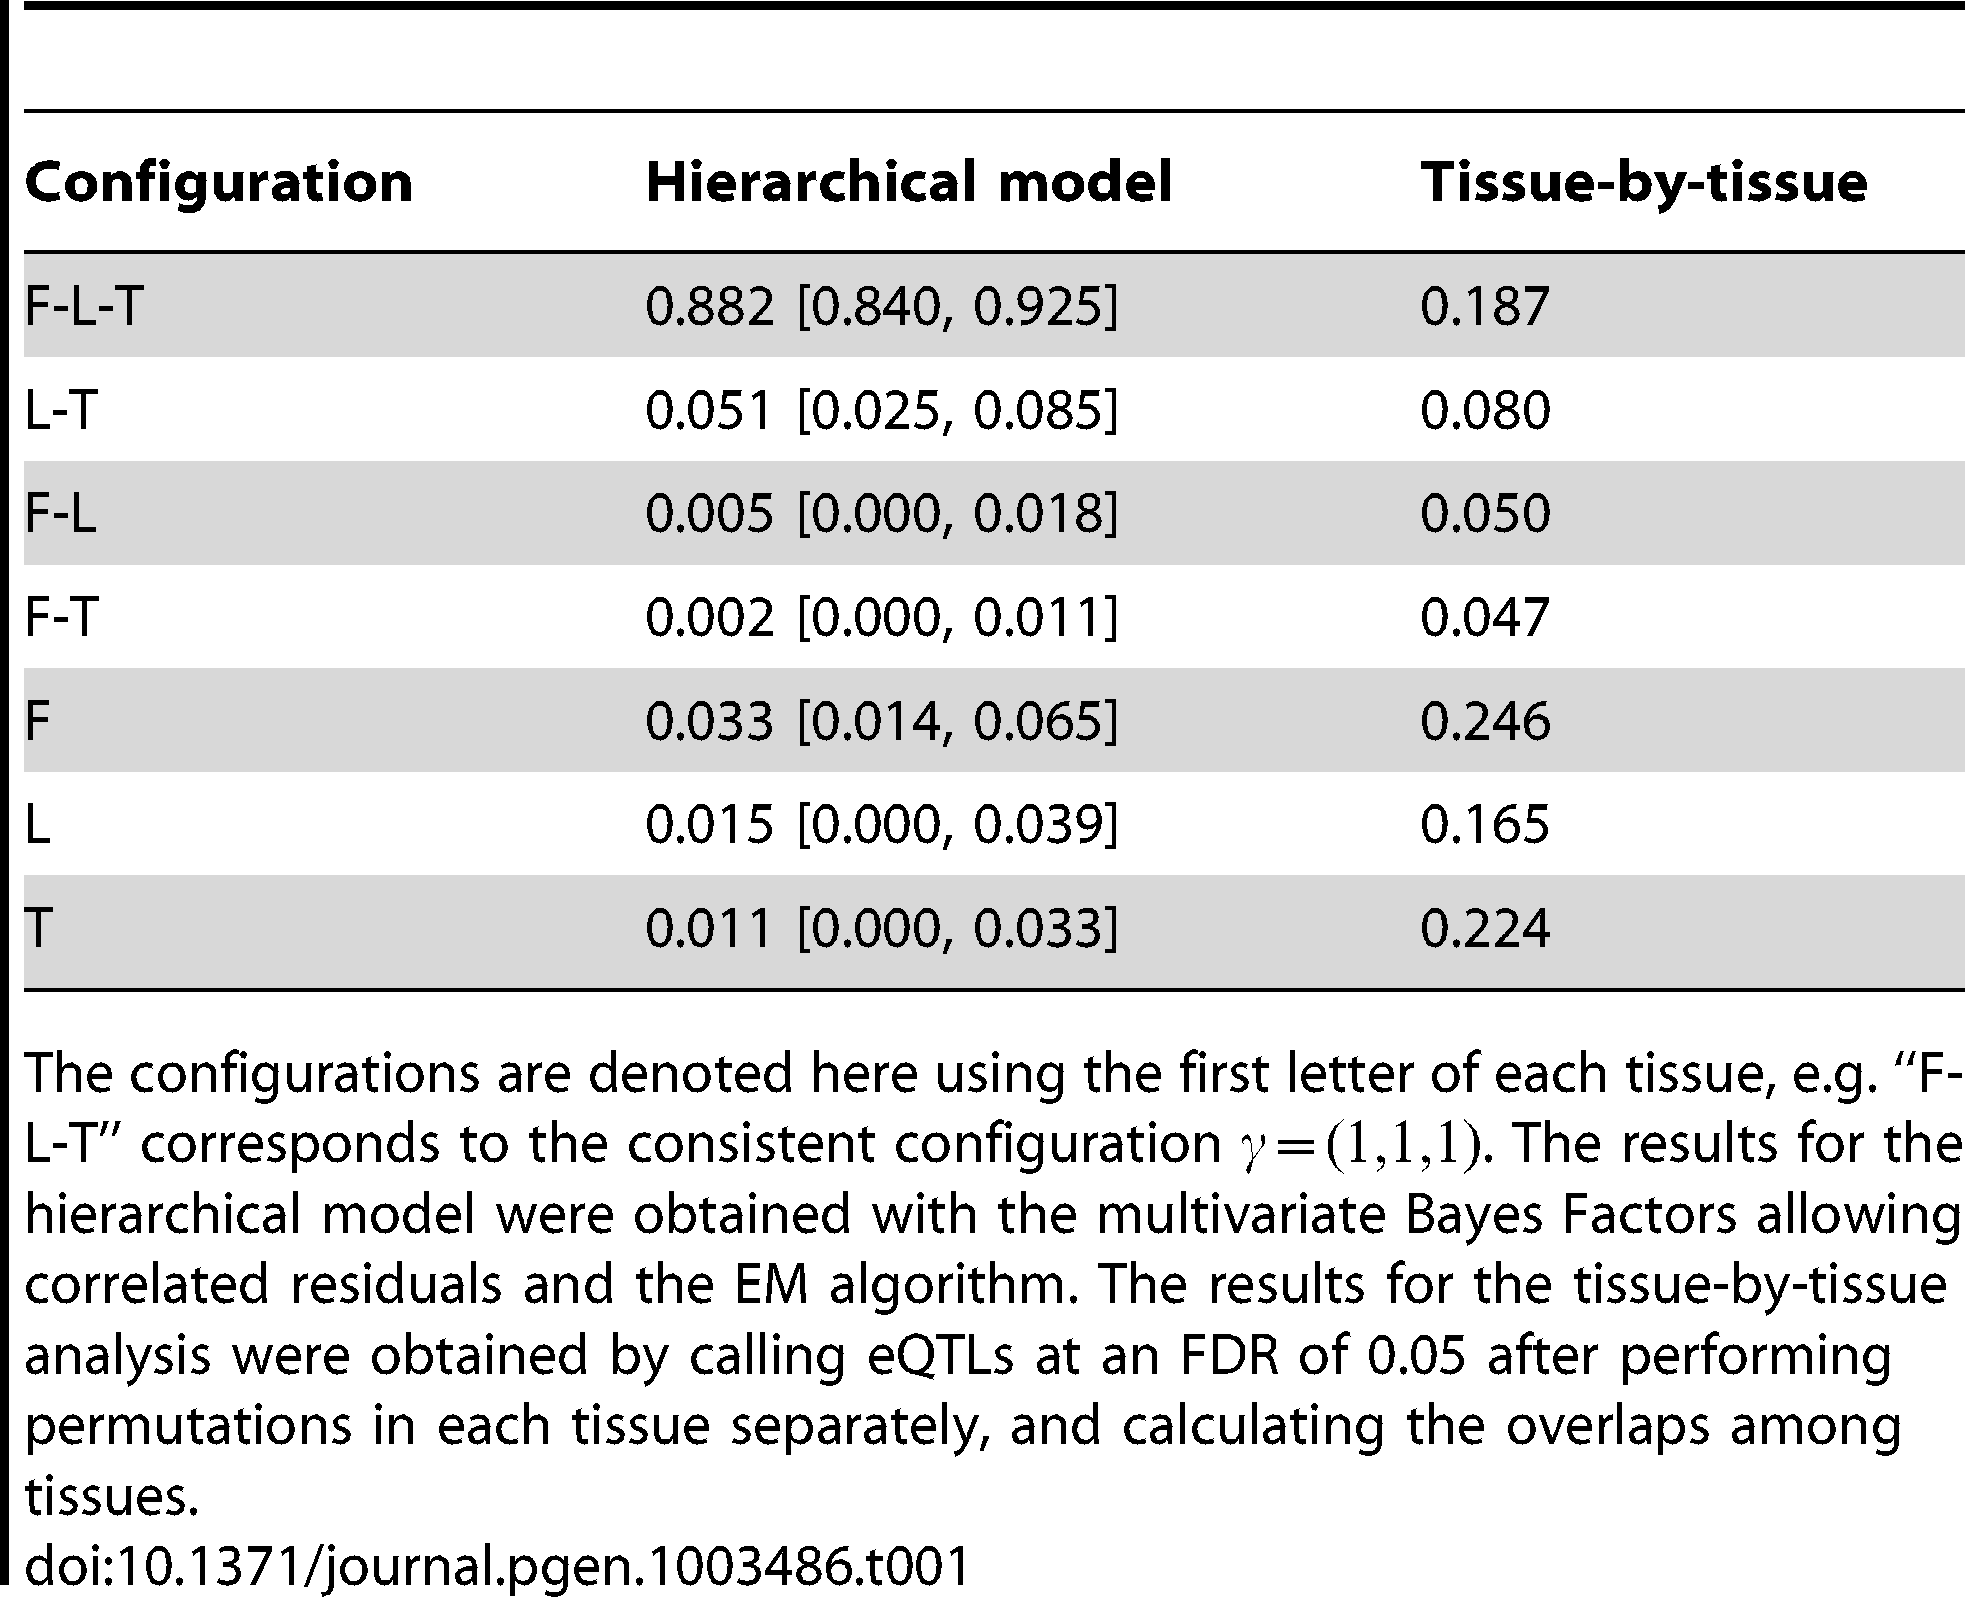 Inference of the proportion of tissue specificity.